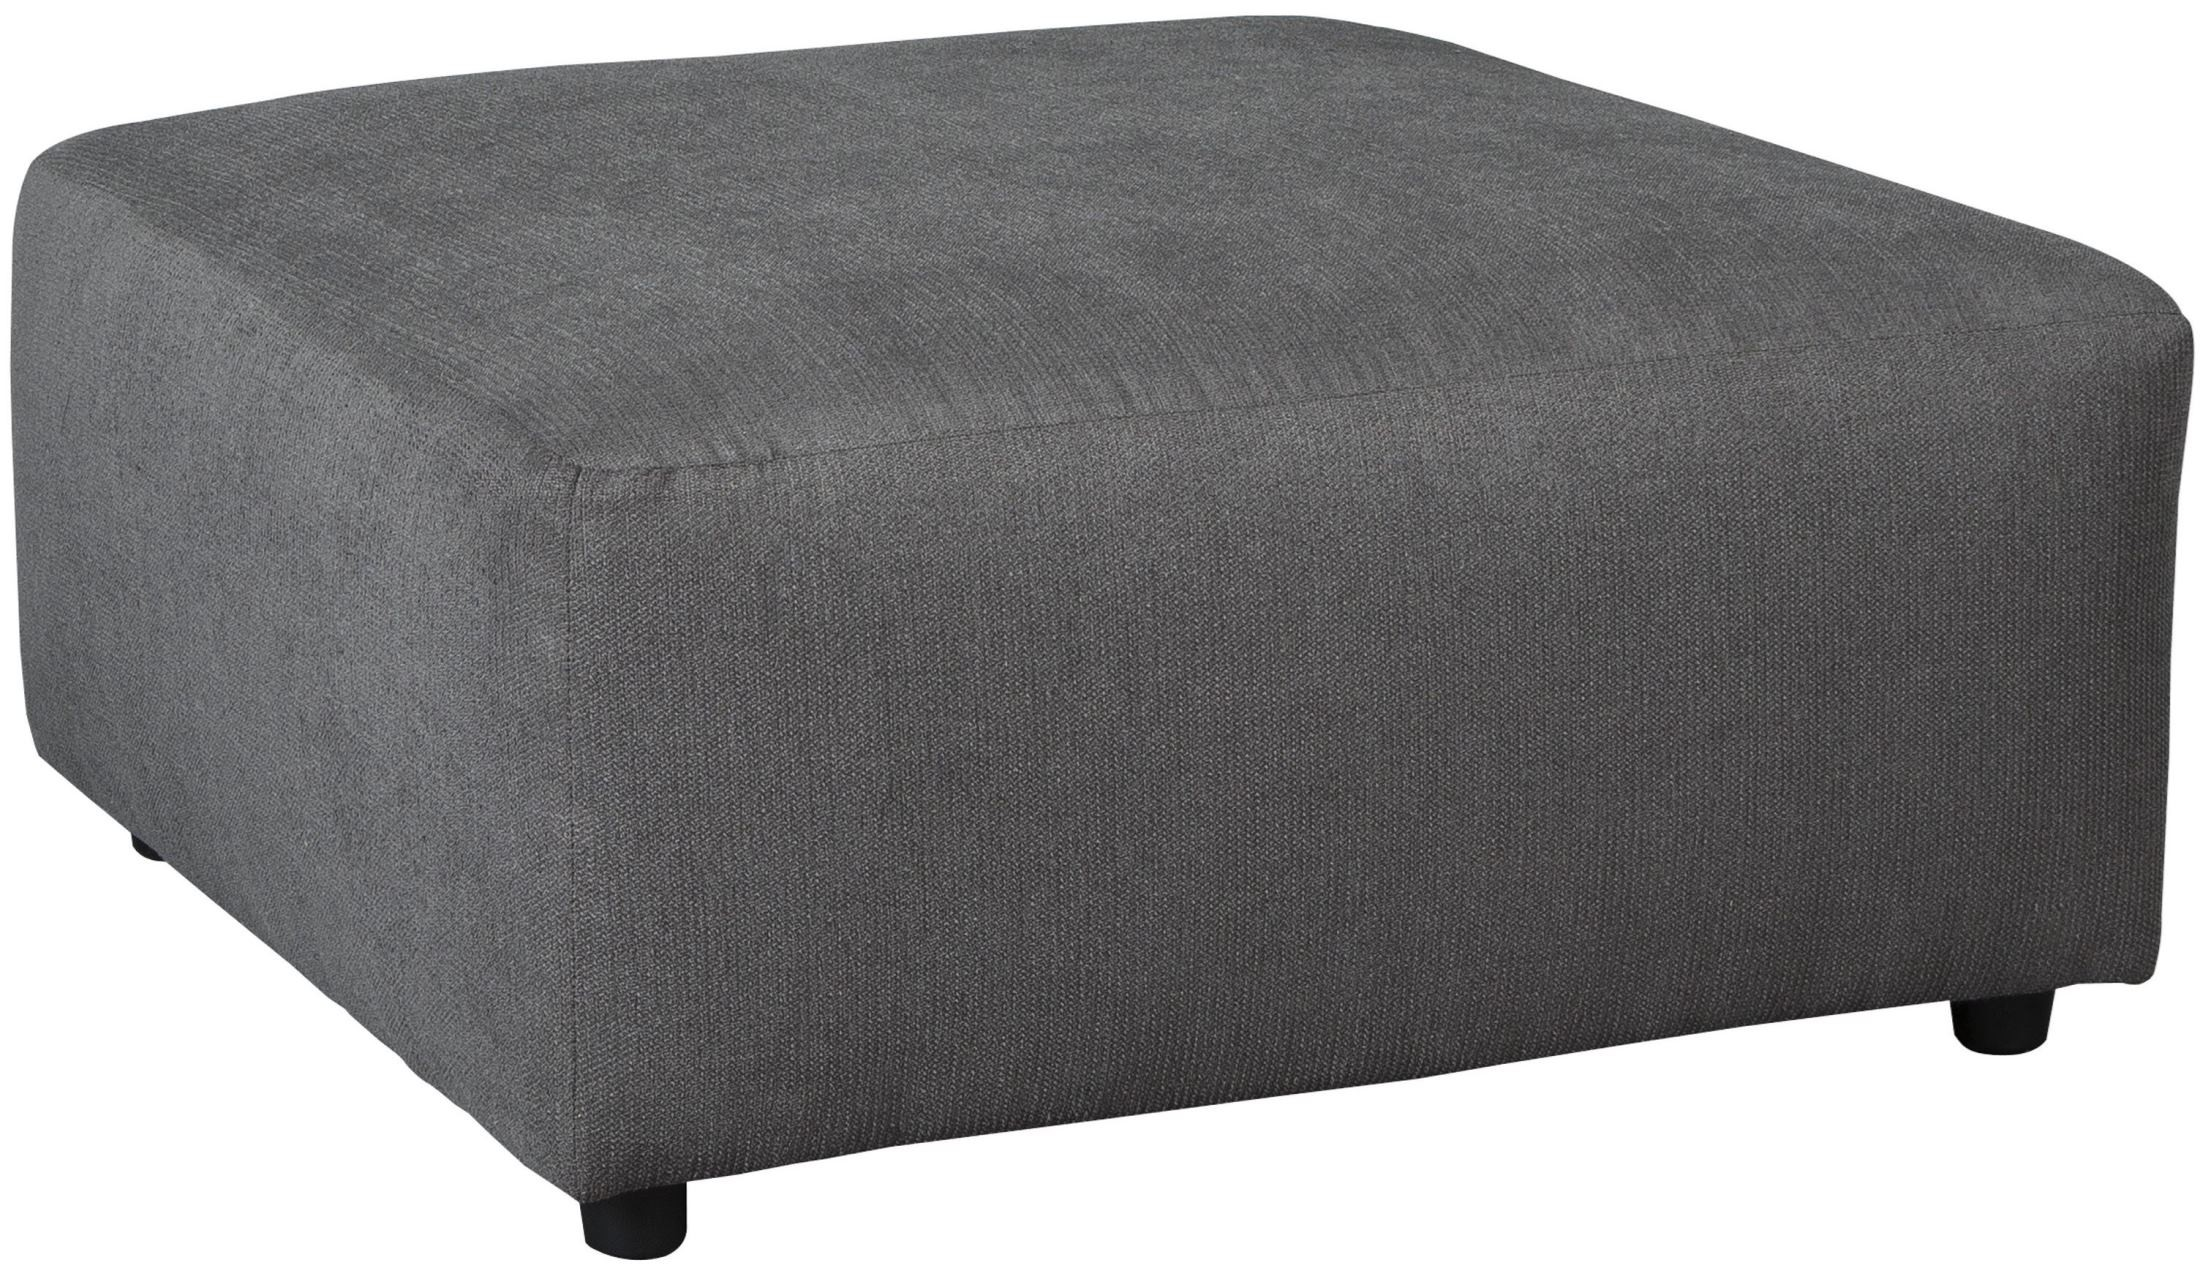 Jayceon Gray Oversized Accent Ottoman From Ashley 6490208